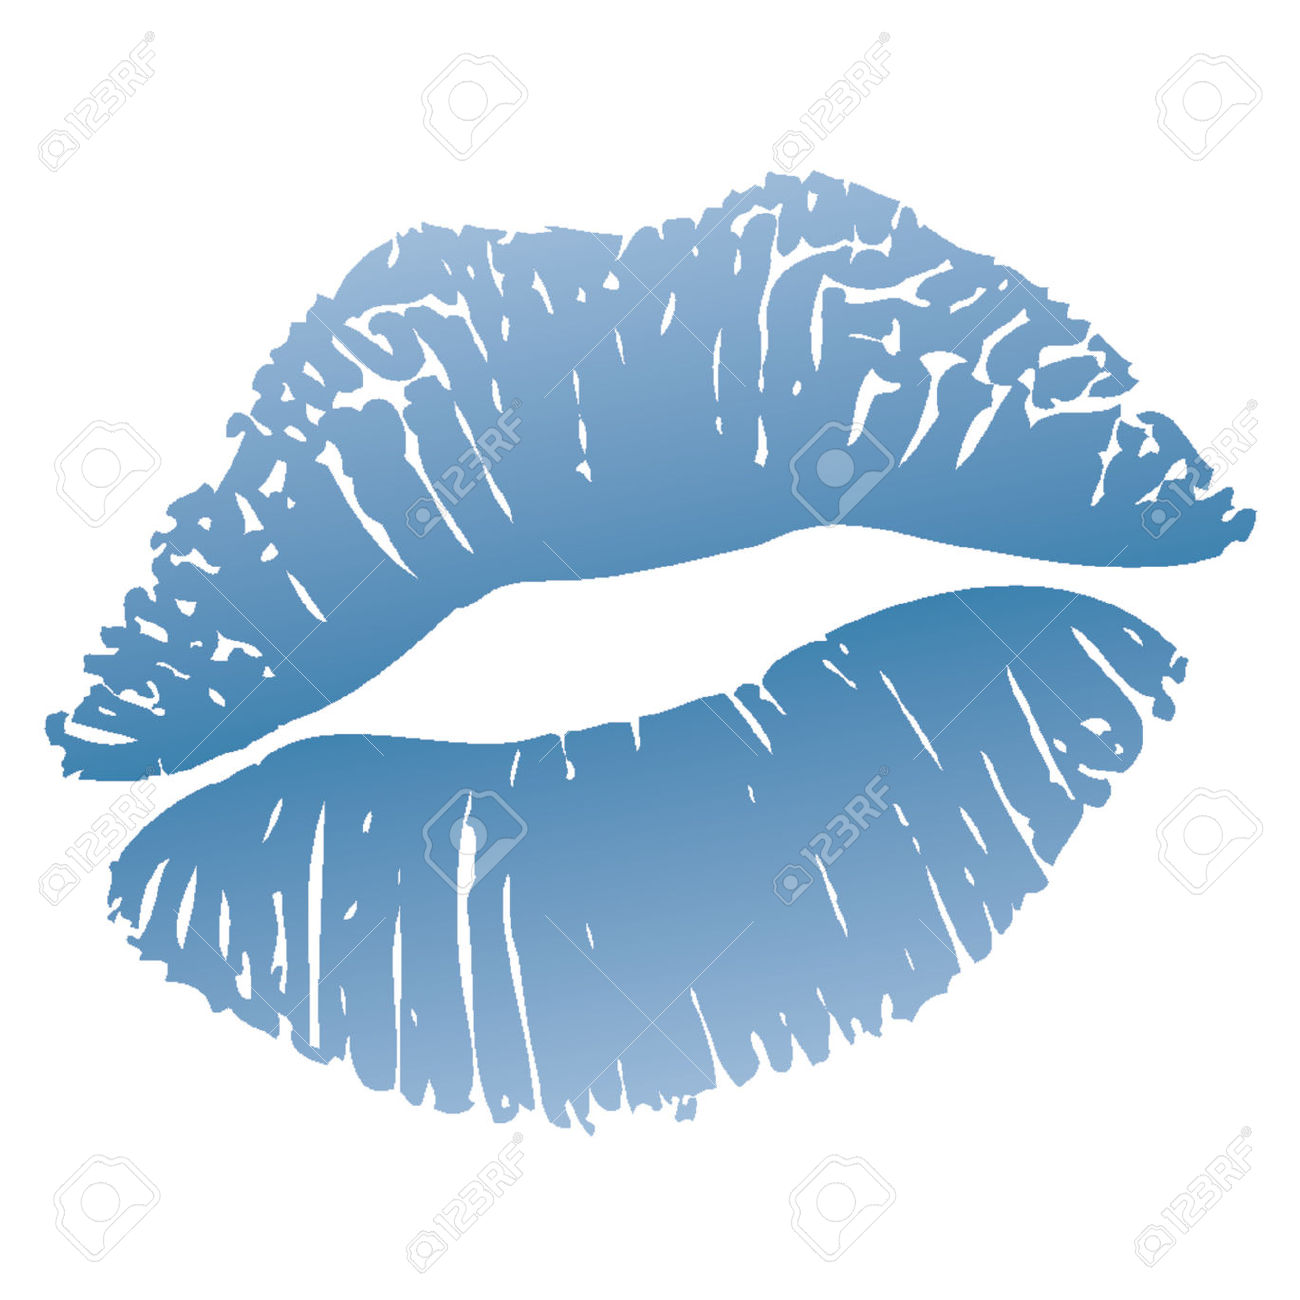 Clipart kiss transparent background.